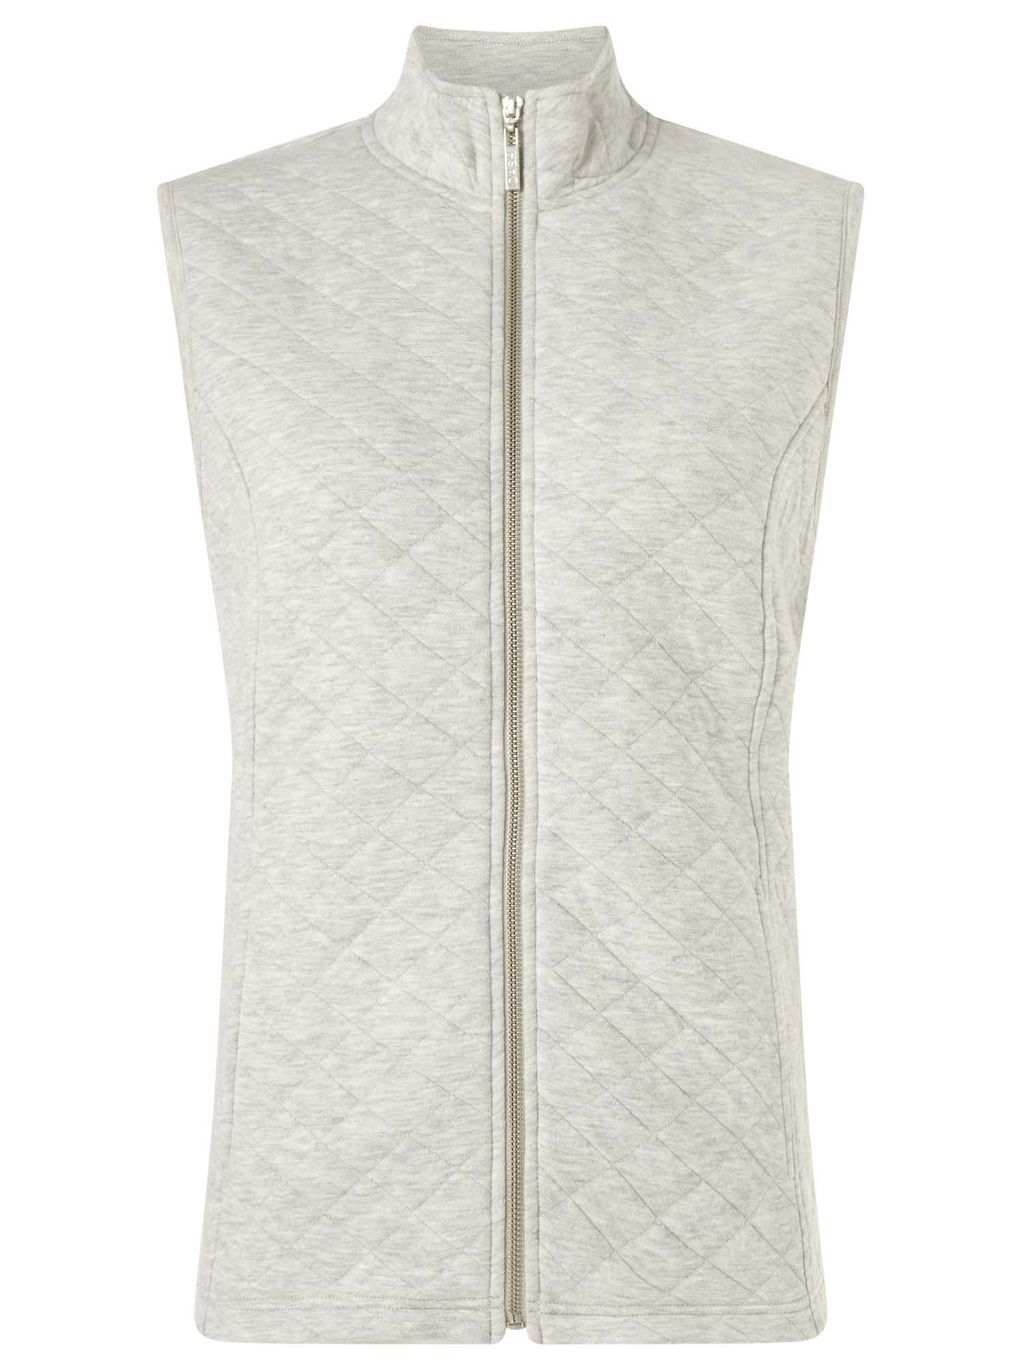 Silver Interlock Gilet - sleeve style: sleeveless; style: gilet; collar: funnel; predominant colour: light grey; occasions: casual; length: standard; fit: straight cut (boxy); fibres: cotton - 100%; sleeve length: sleeveless; collar break: high; pattern type: fabric; texture group: other - light to midweight; embellishment: quilted; pattern: marl; season: s/s 2016; wardrobe: highlight